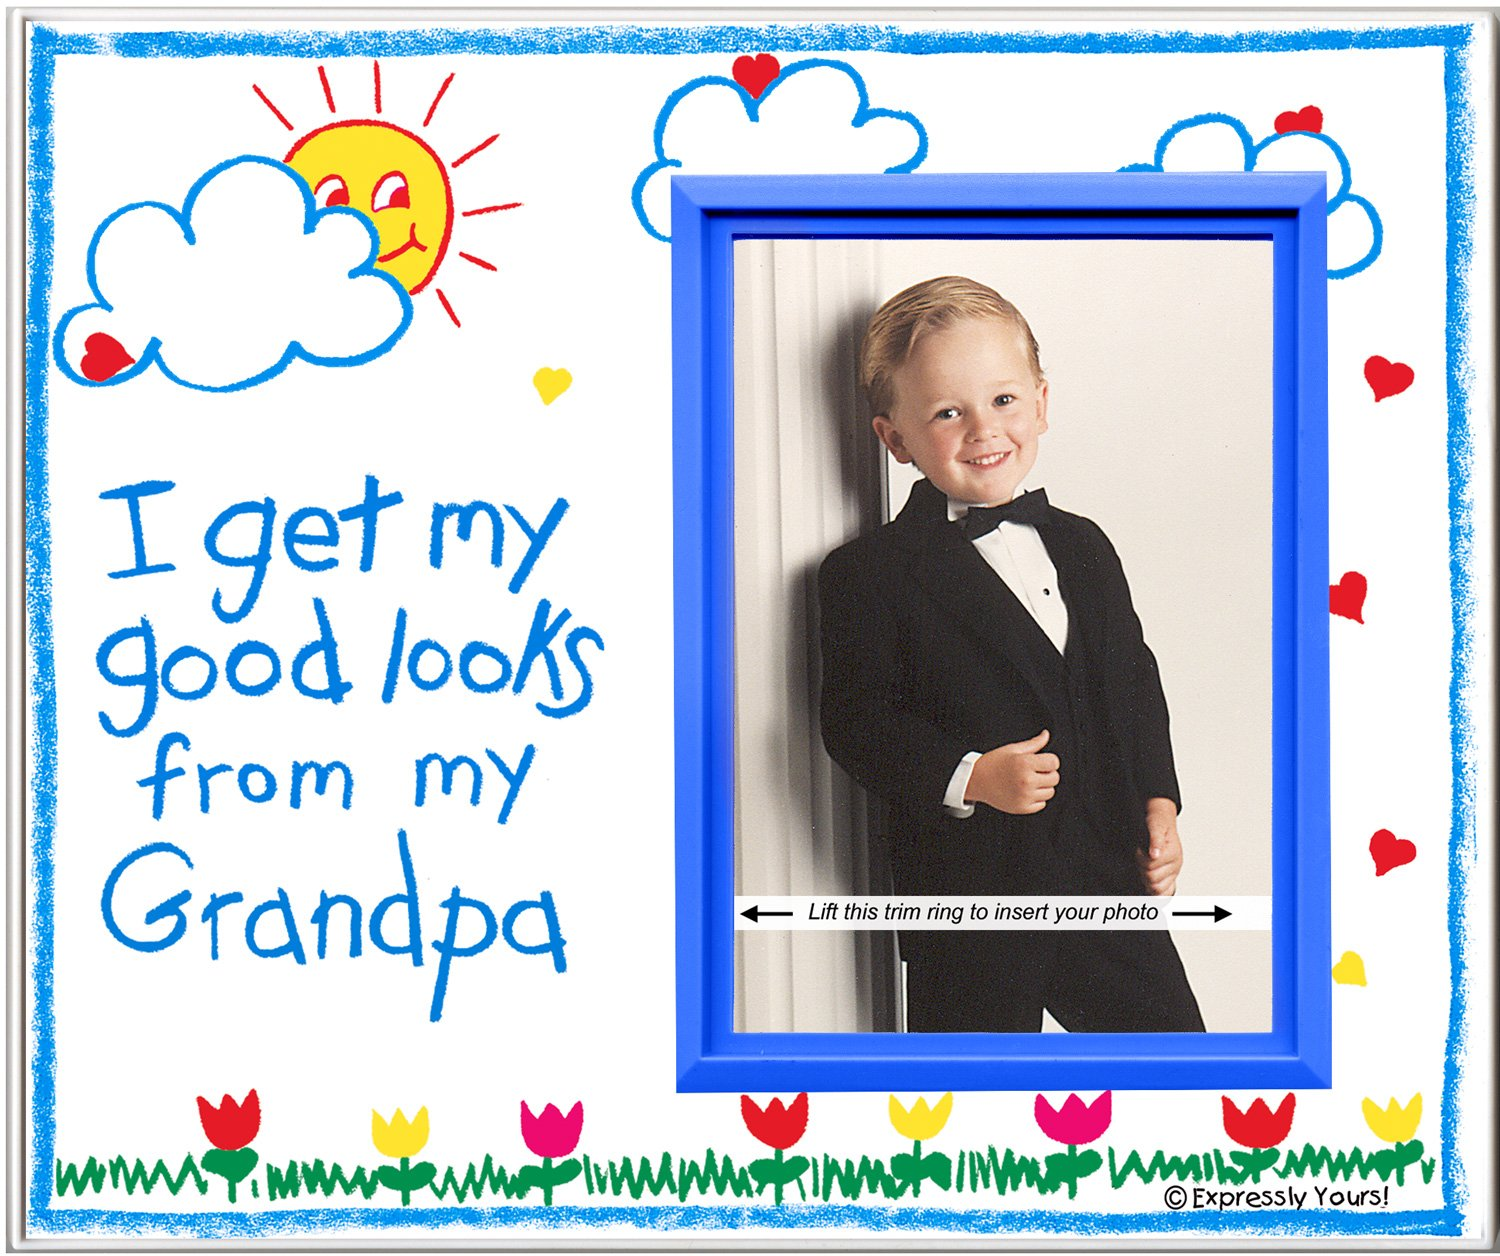 Grandpa Picture Frame | Affordable, Colorful and Fun | Holds 3.5 x 5 Photo | From Boy or Girl | Innovative Front-Loading Design | Crayola Theme